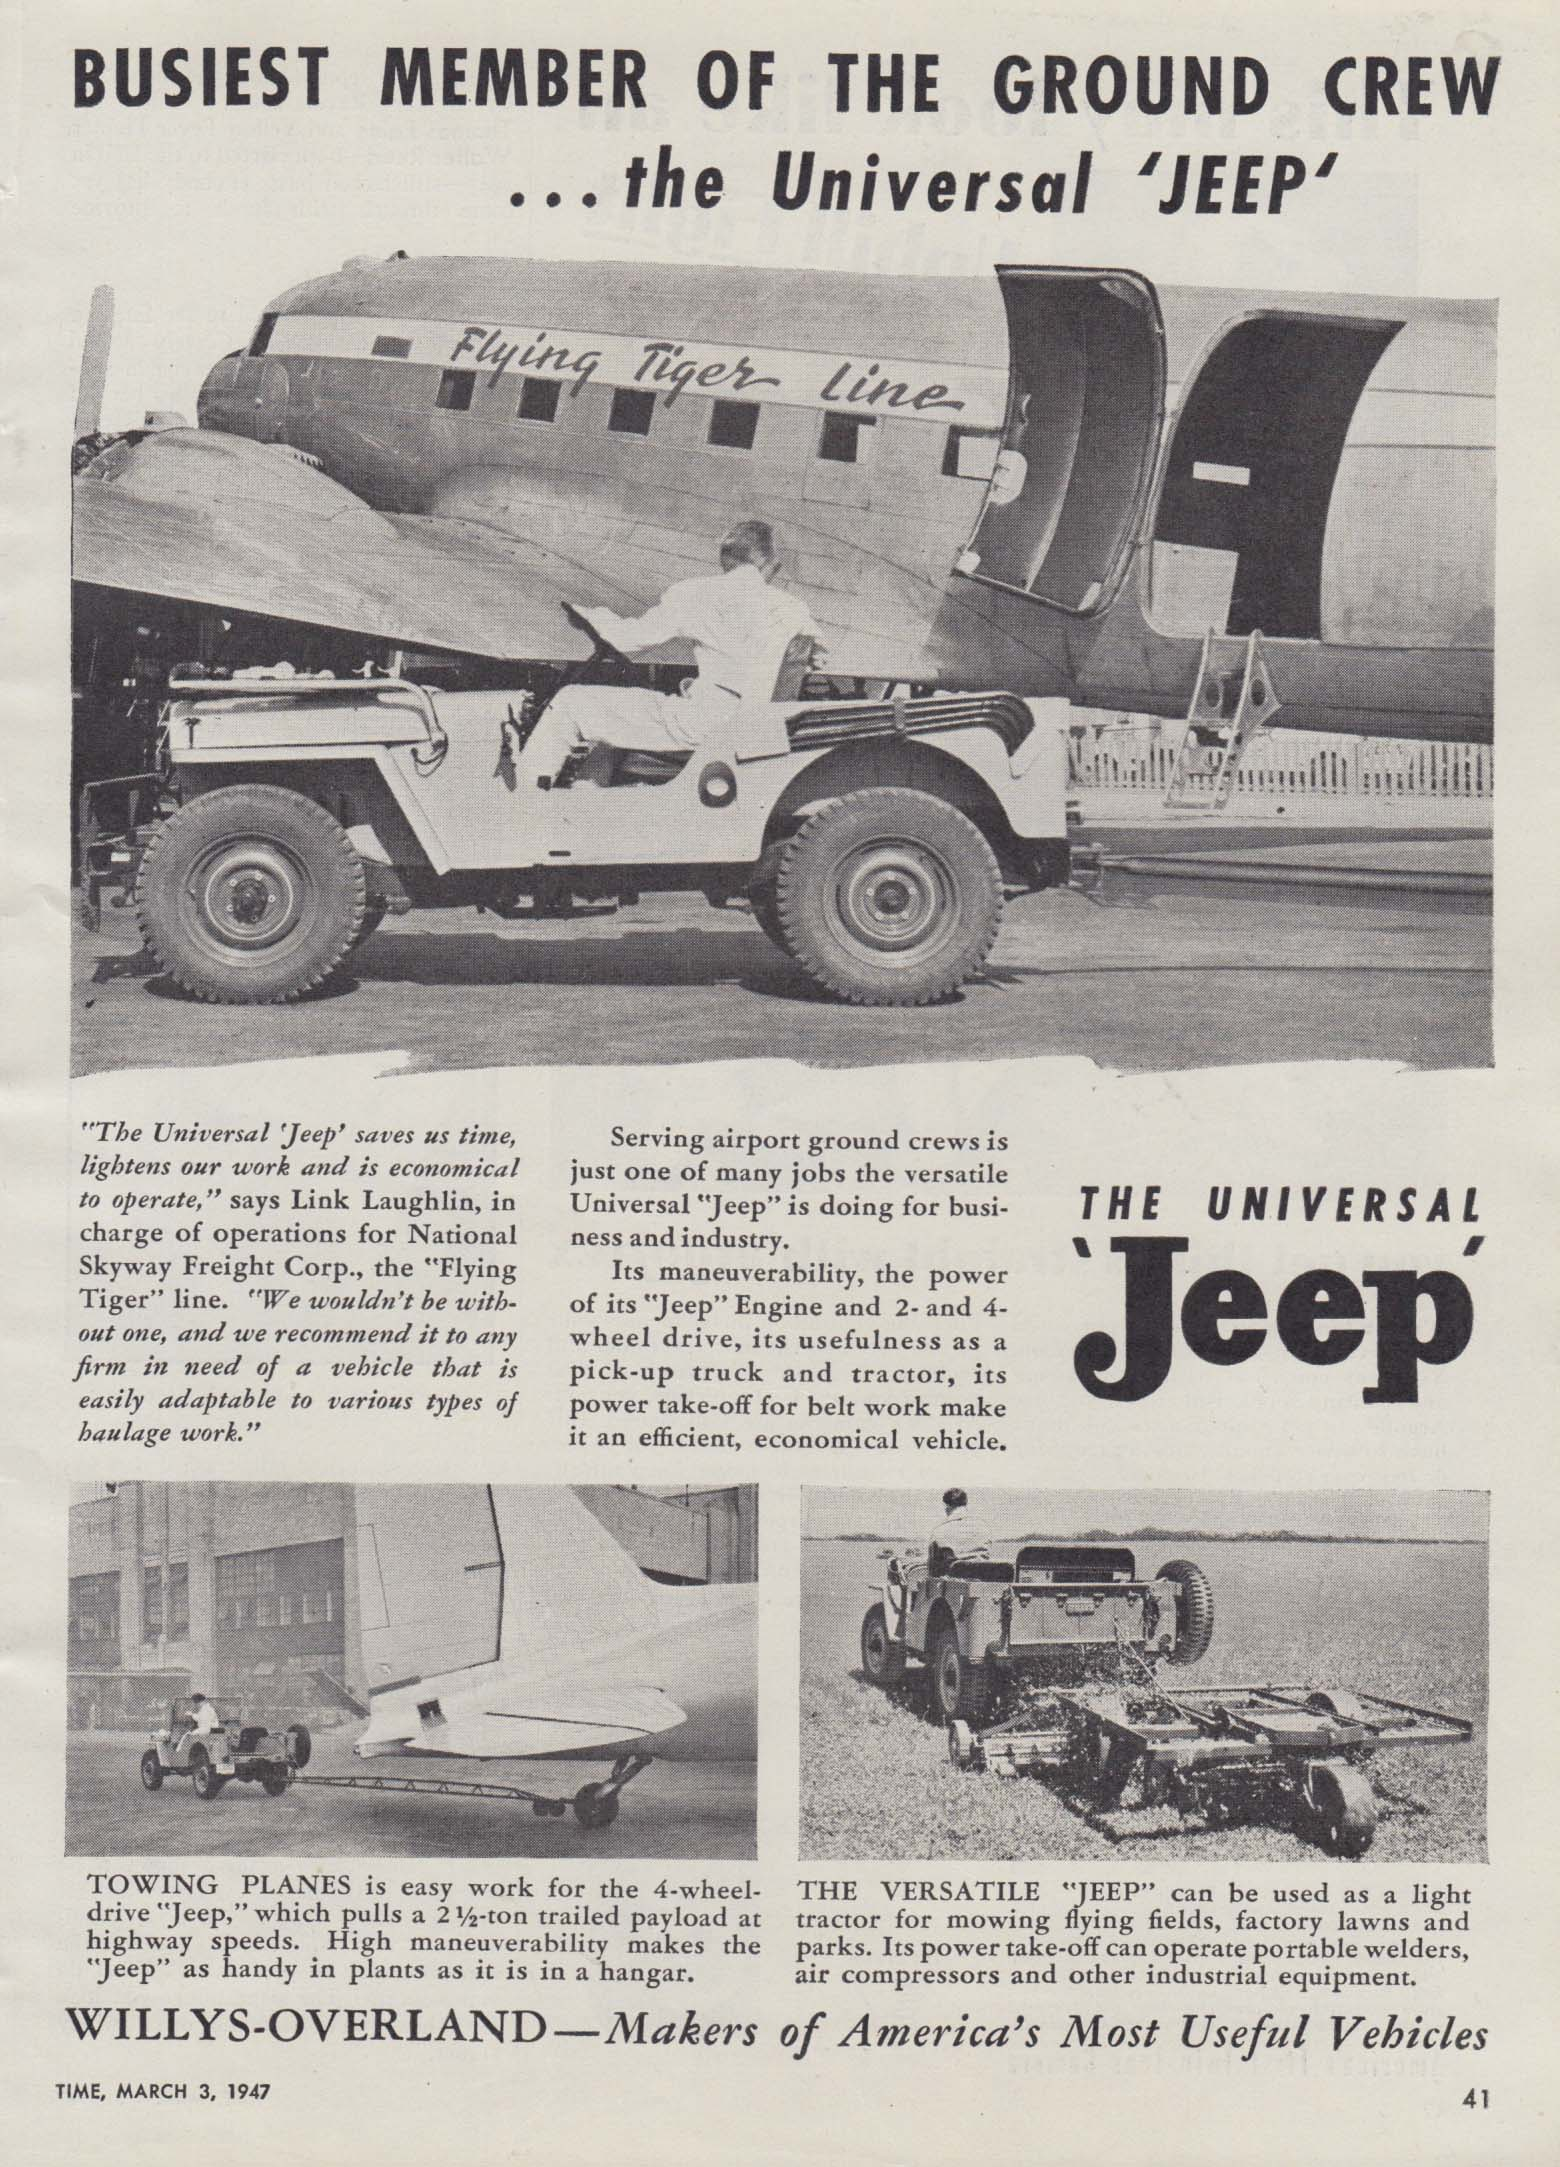 Image for Busiest member of the Flying Tiger Line ground crew Universal Jeep ad 1947 T